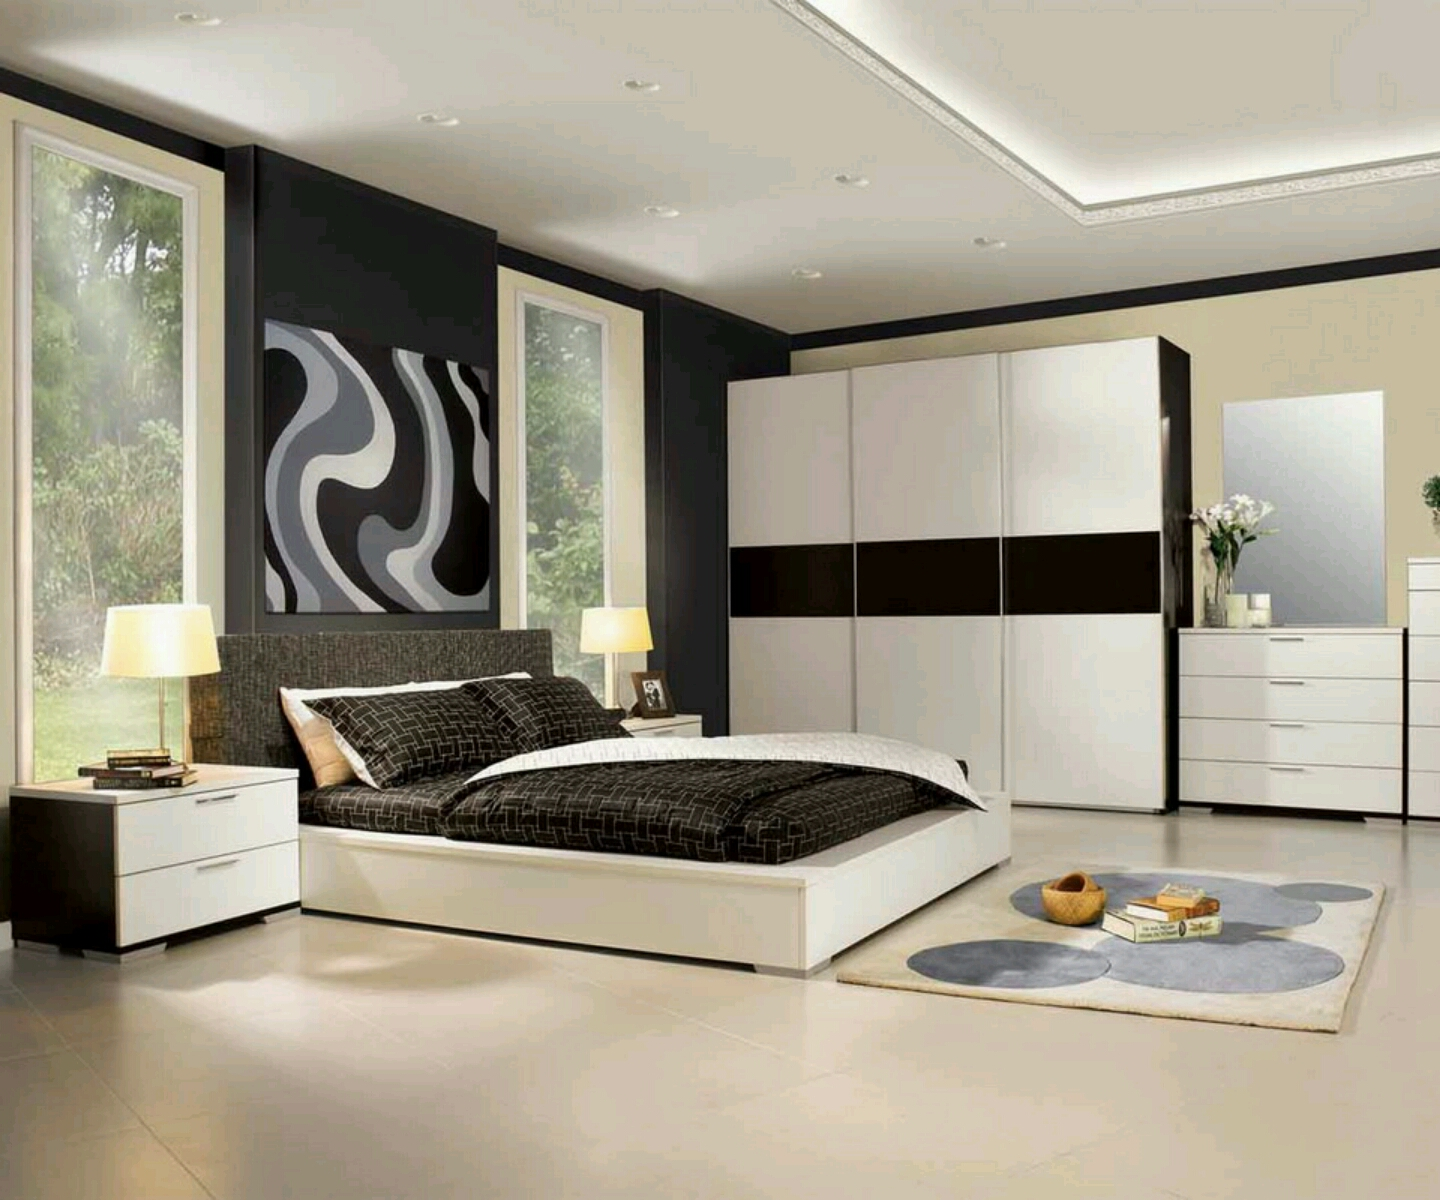 Best design home december 2012 for Luxury modern bedroom